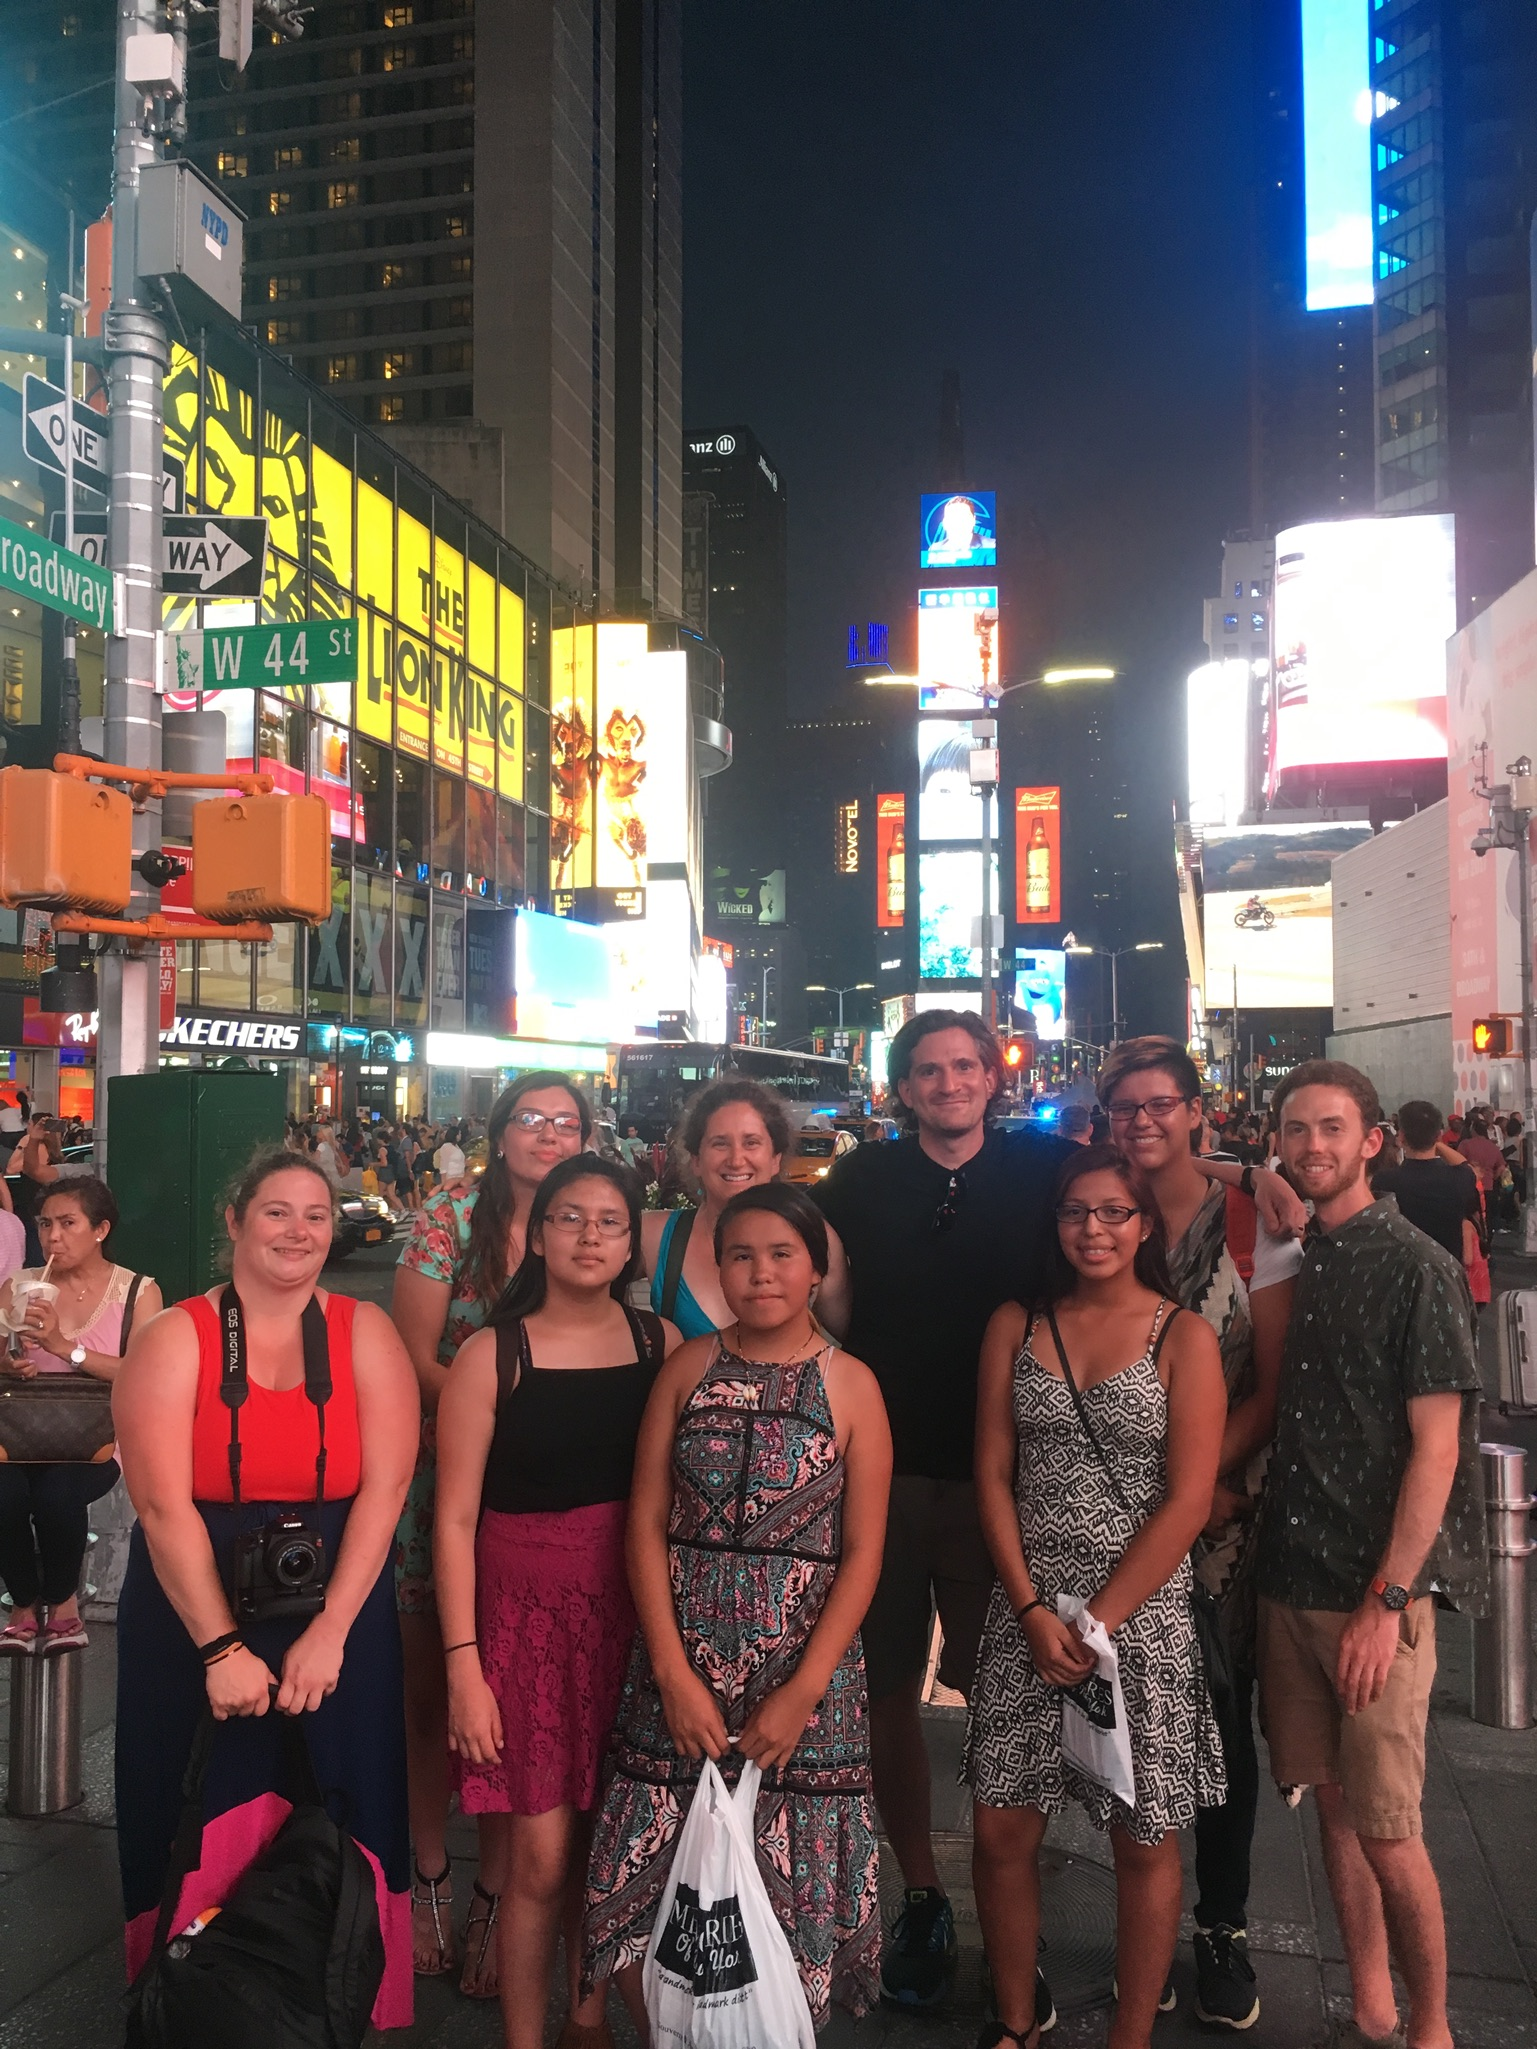 Times Square!